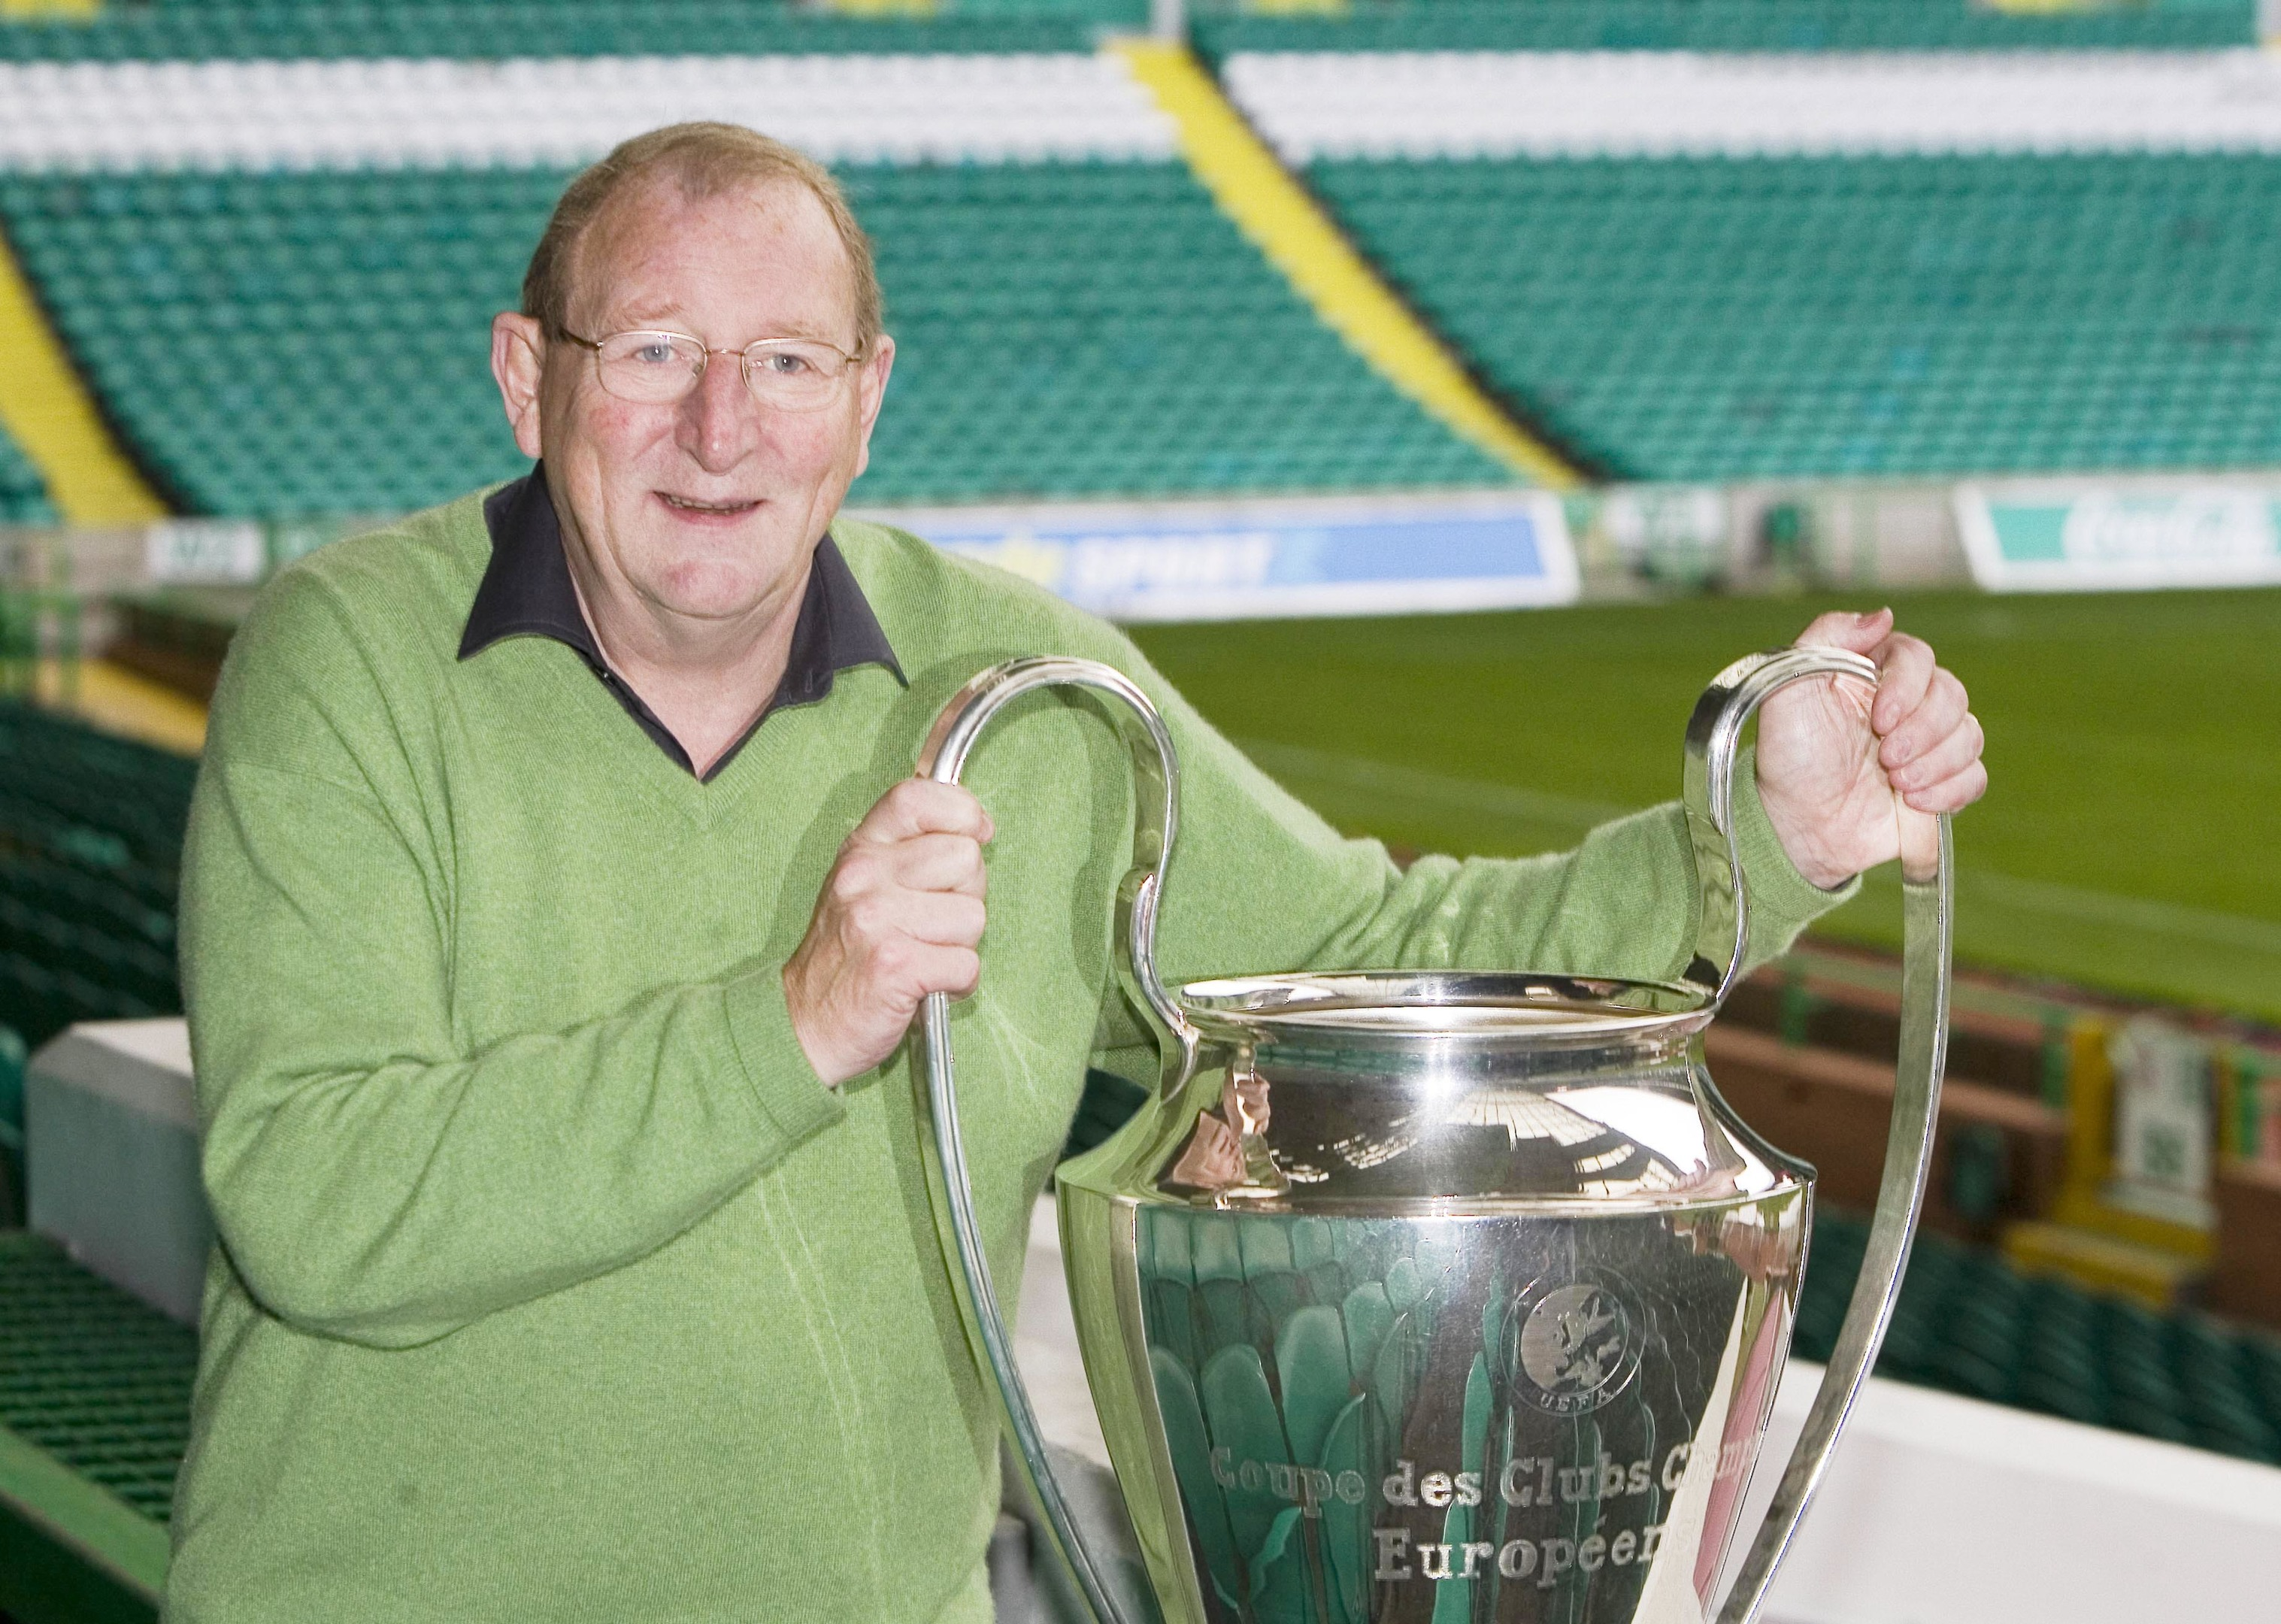 Tommy Gemmell gets to grips with the European Cup at Celtic Park in 2006.